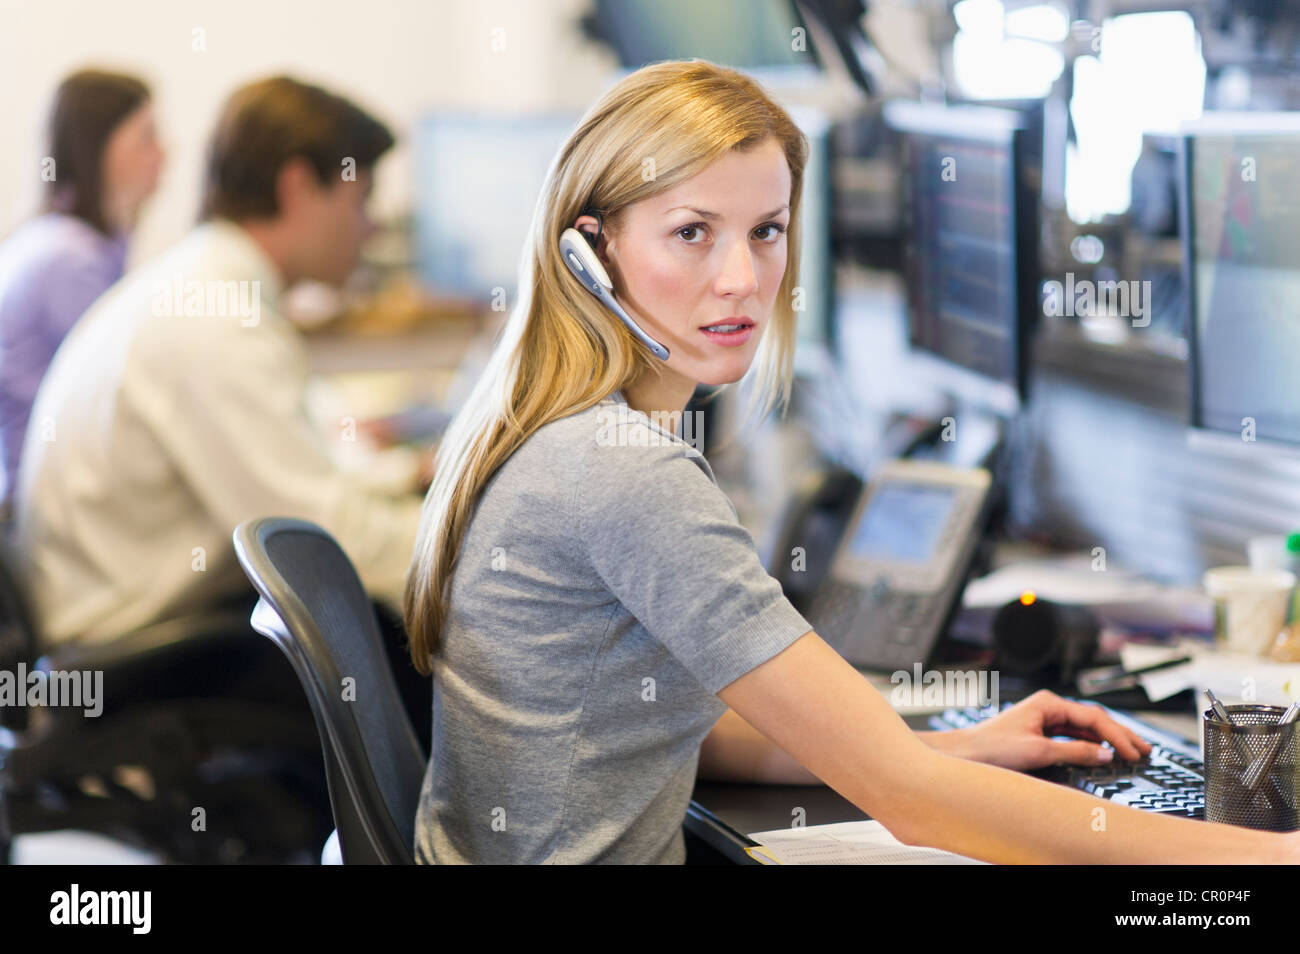 USA, New York, New York City, Portrait of female trader at trading desk Stock Photo